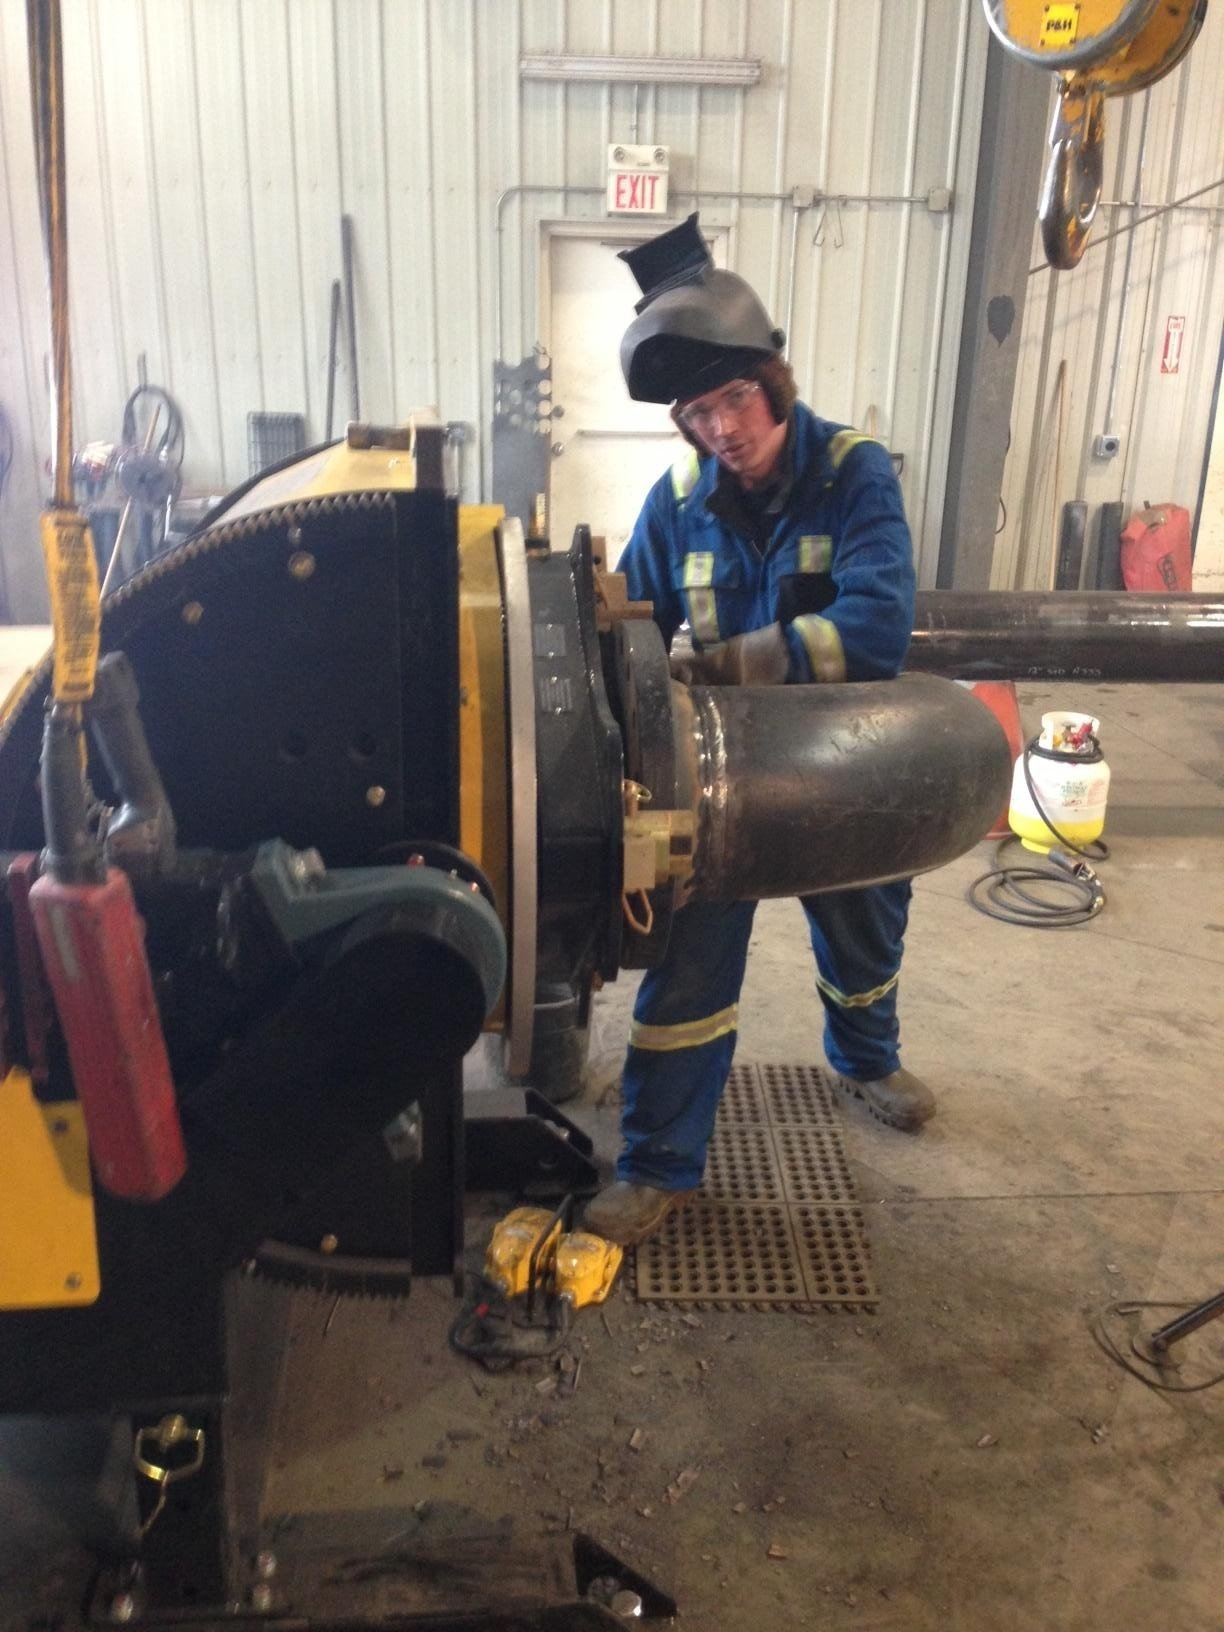 gear tilt welding positioner rental available